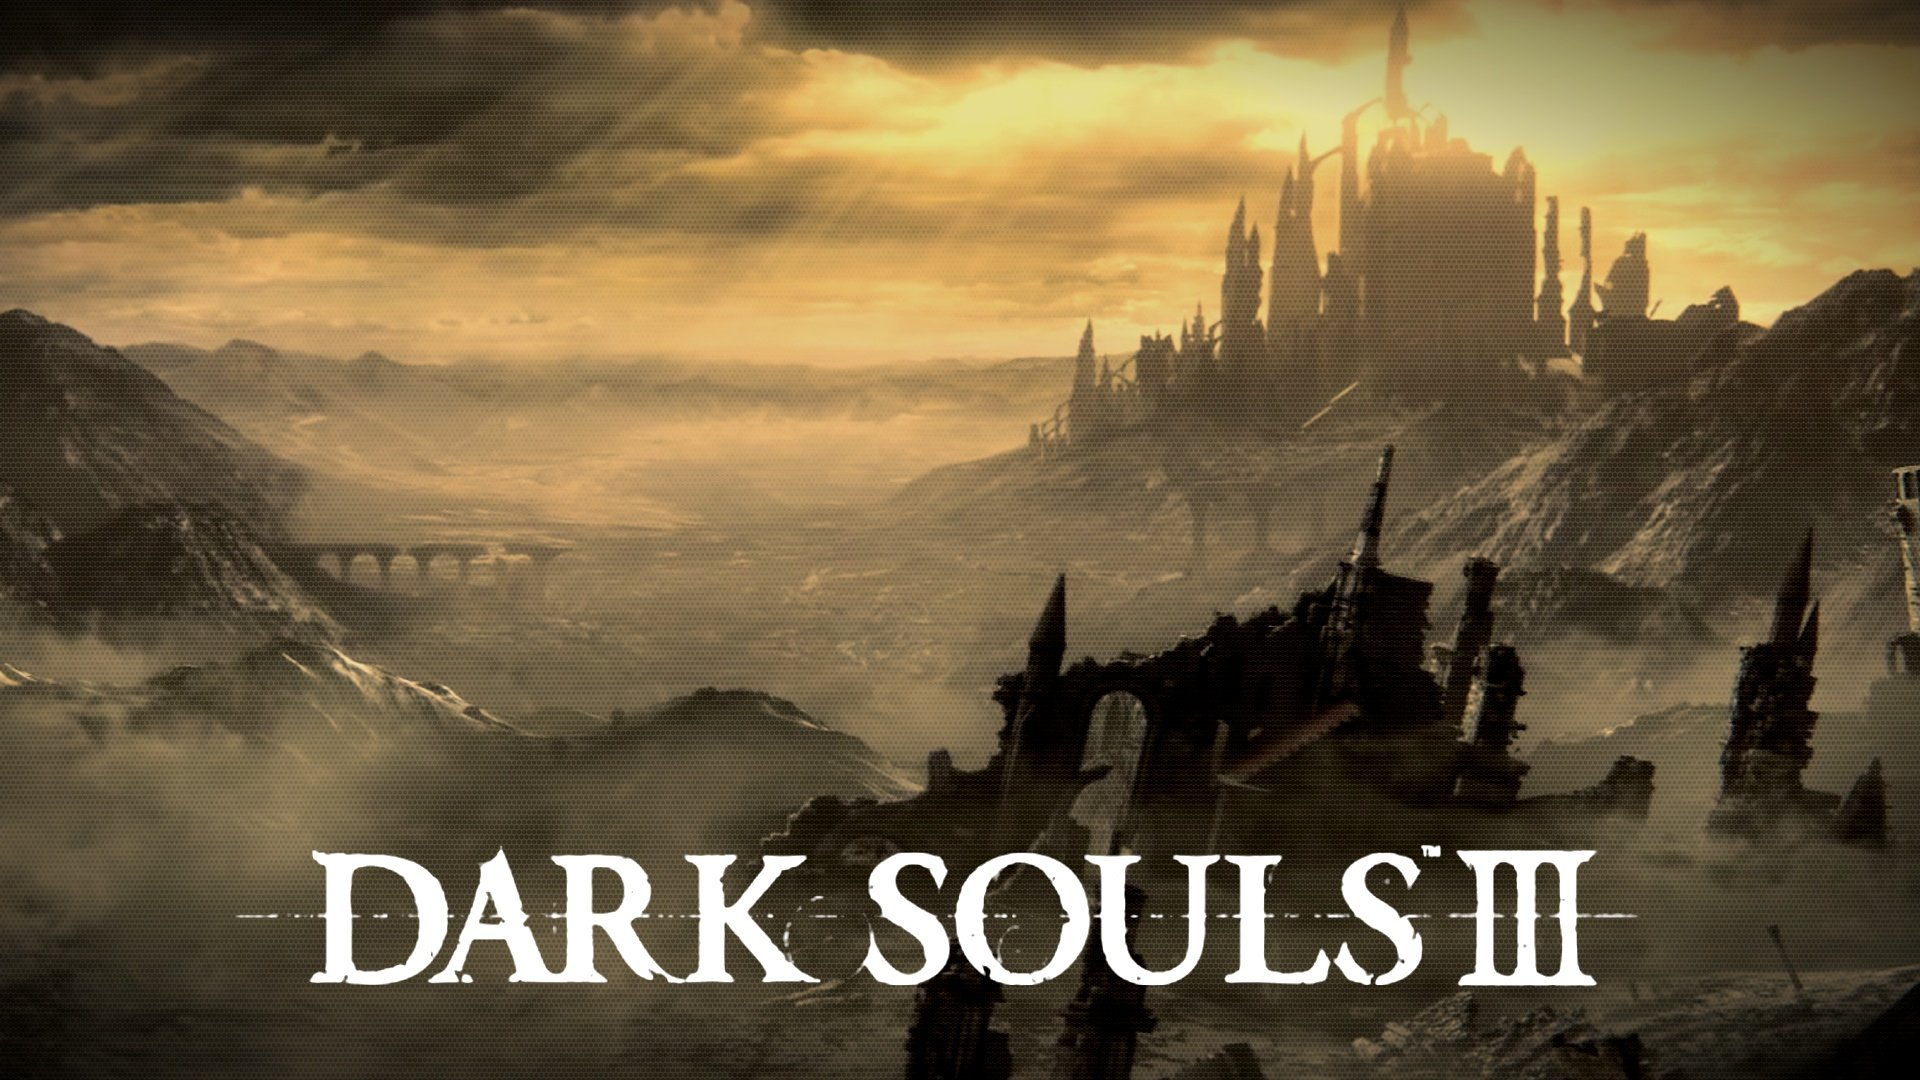 DARK SOULS 3 action rpg fighting warrior fantasy poster wallpaper 1920x1080